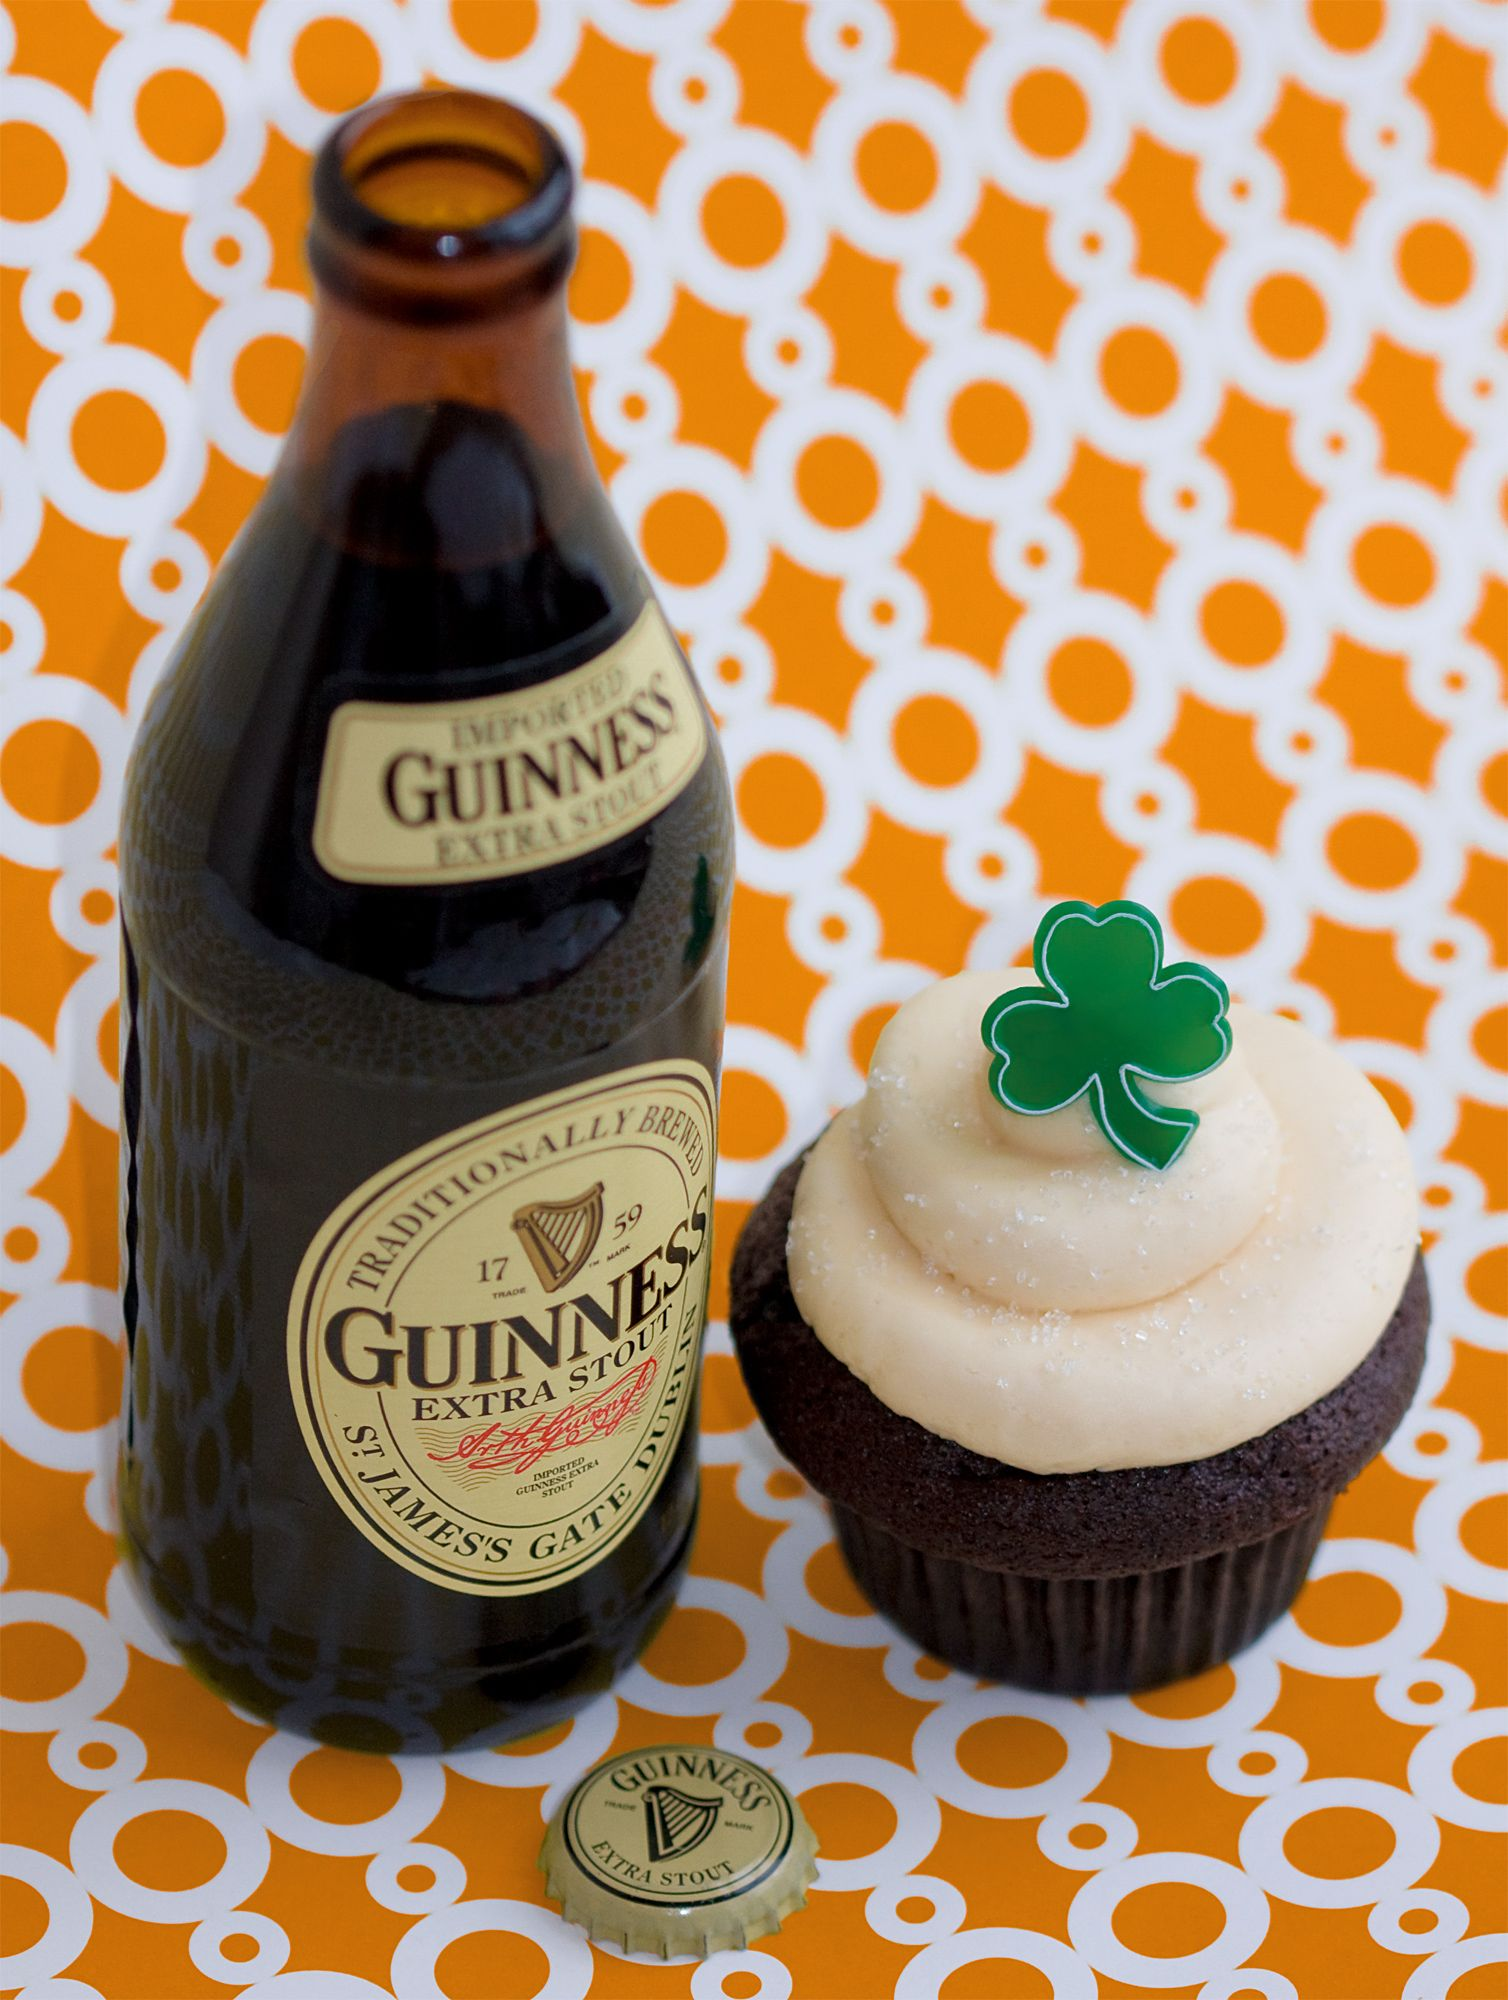 Guinness Chocolate Stout with Irish Cream Buttercream! #TrophyCupcakes